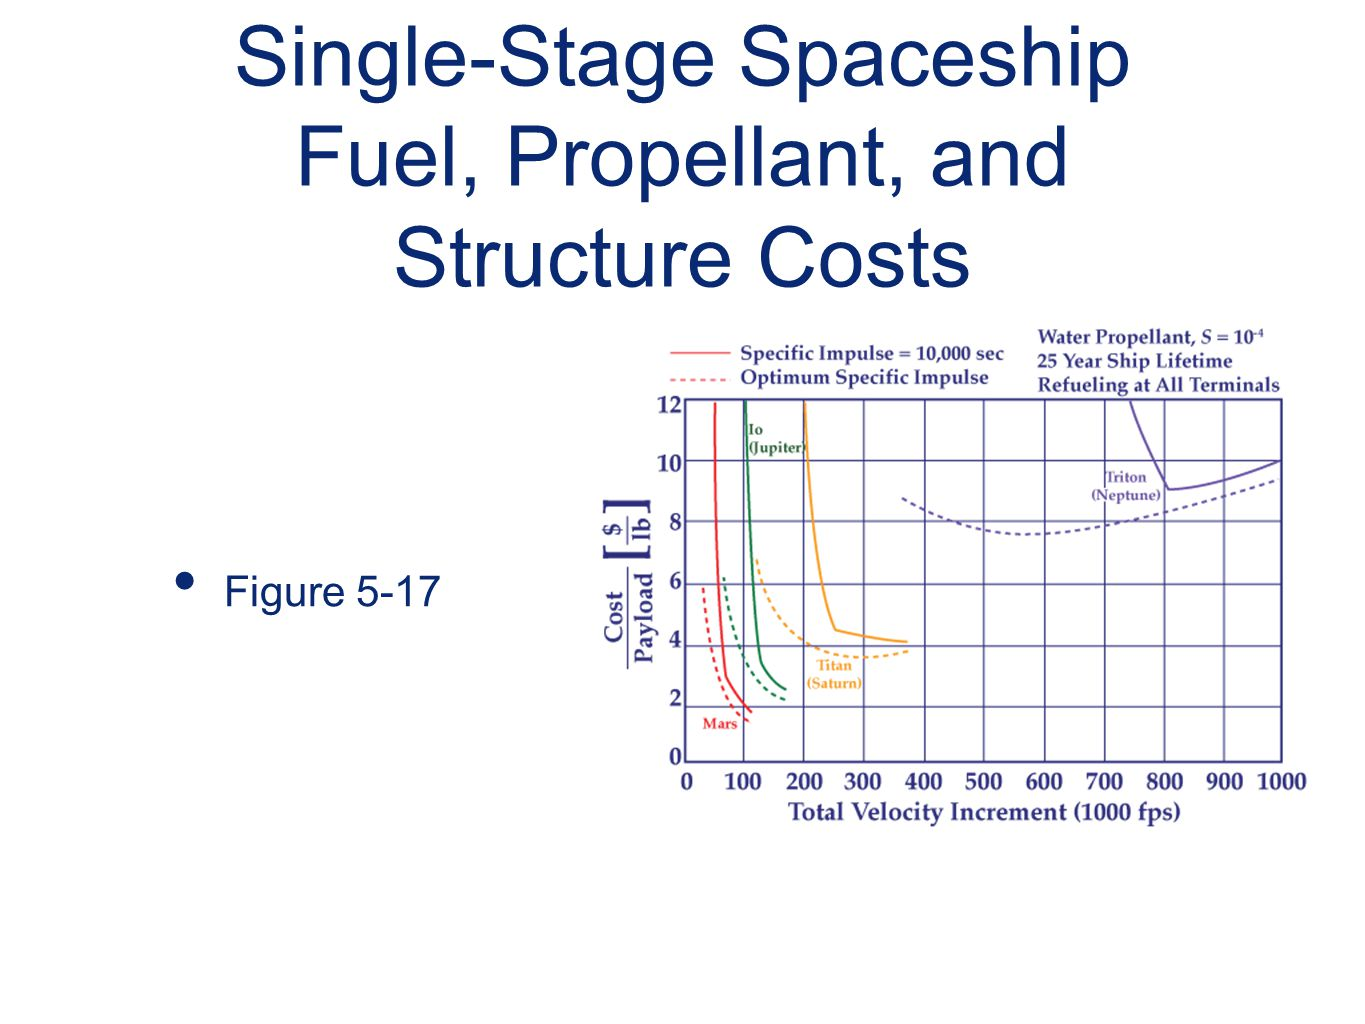 Single-Stage Spaceship Fuel, Propellant, and Structure Costs